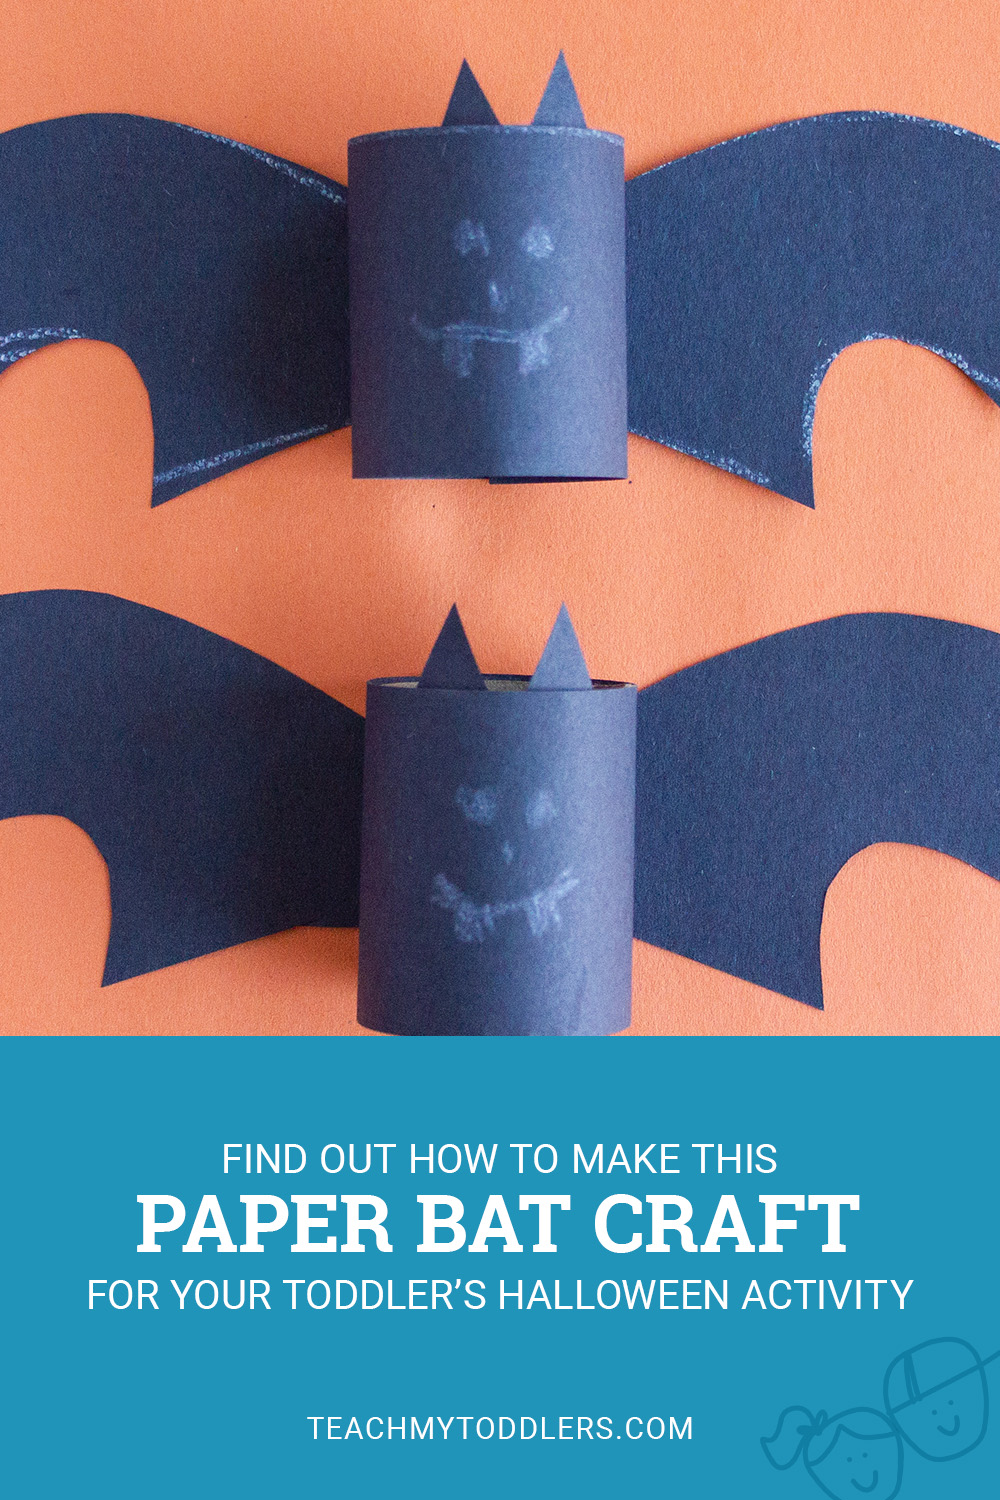 Find out how to make this paper bat craft for toddler's halloween activity